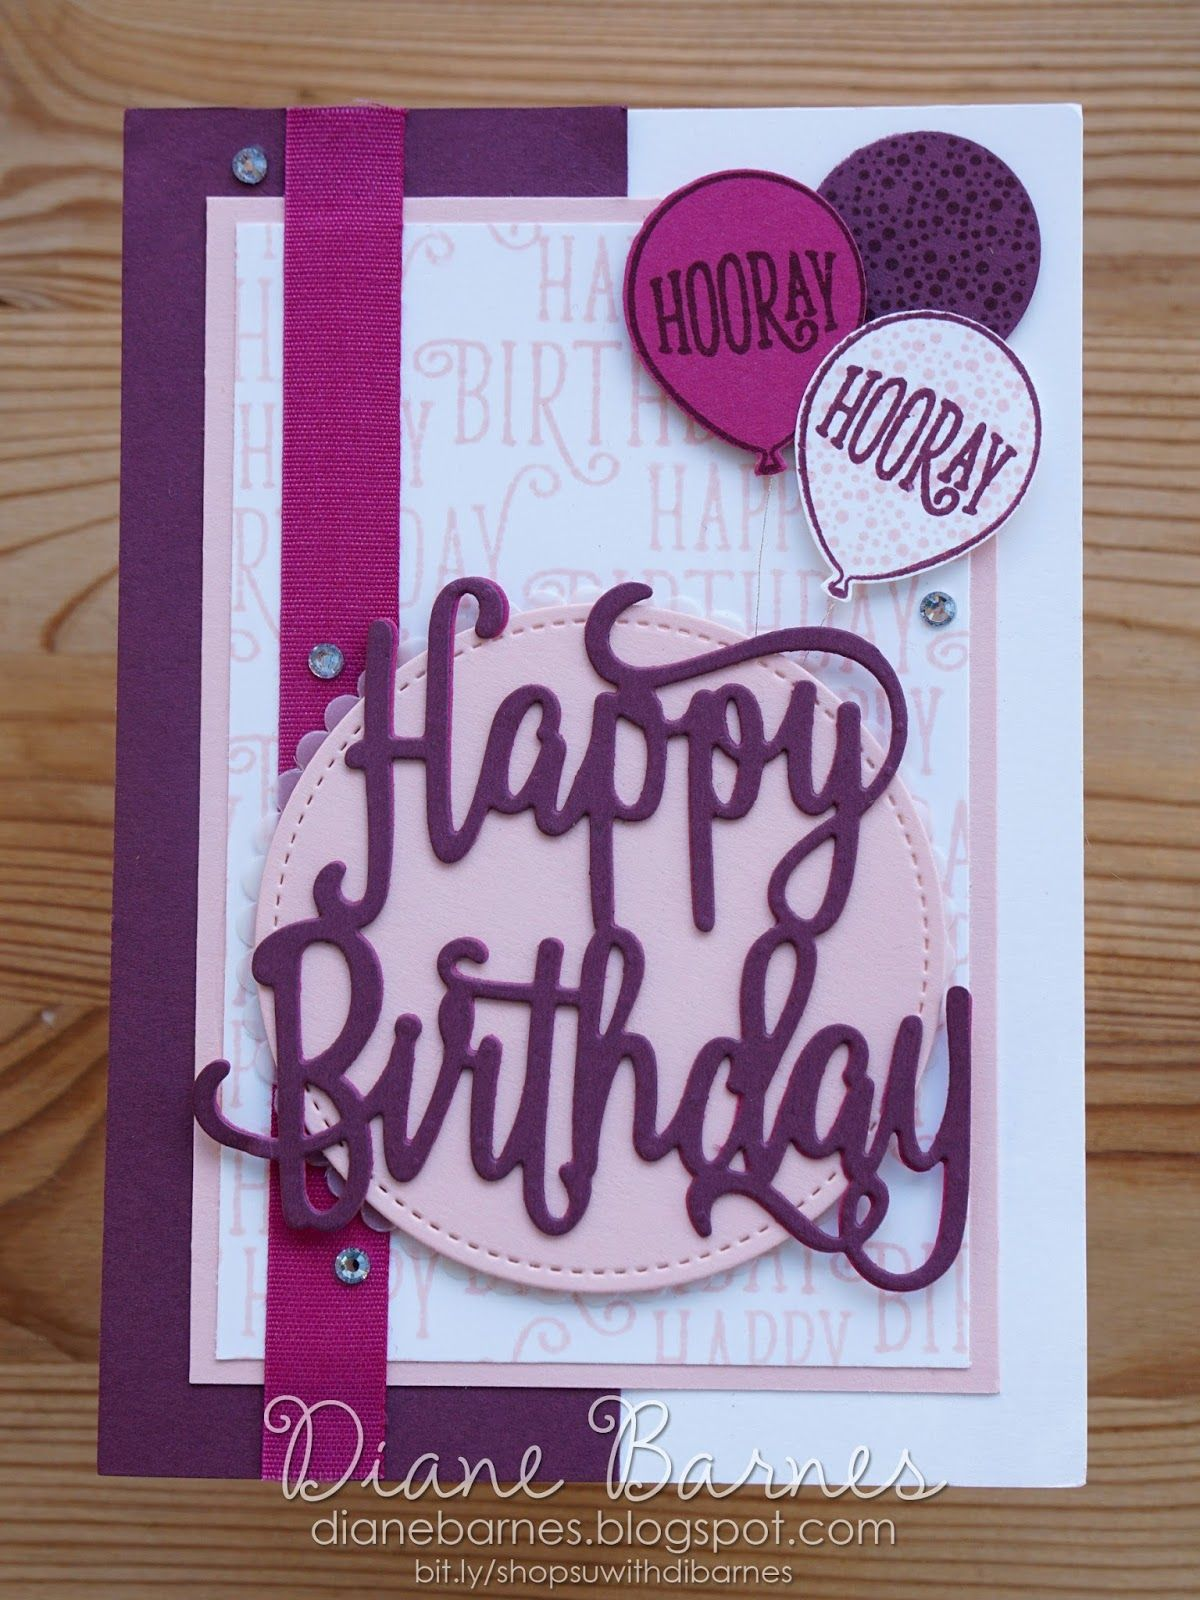 Handmade Birthday Card Using Stampin Up Happy Gorgeous Stamp Die Bundle Cards By Di Barnes Colourmehappy 2017 18 Annual Catalogue